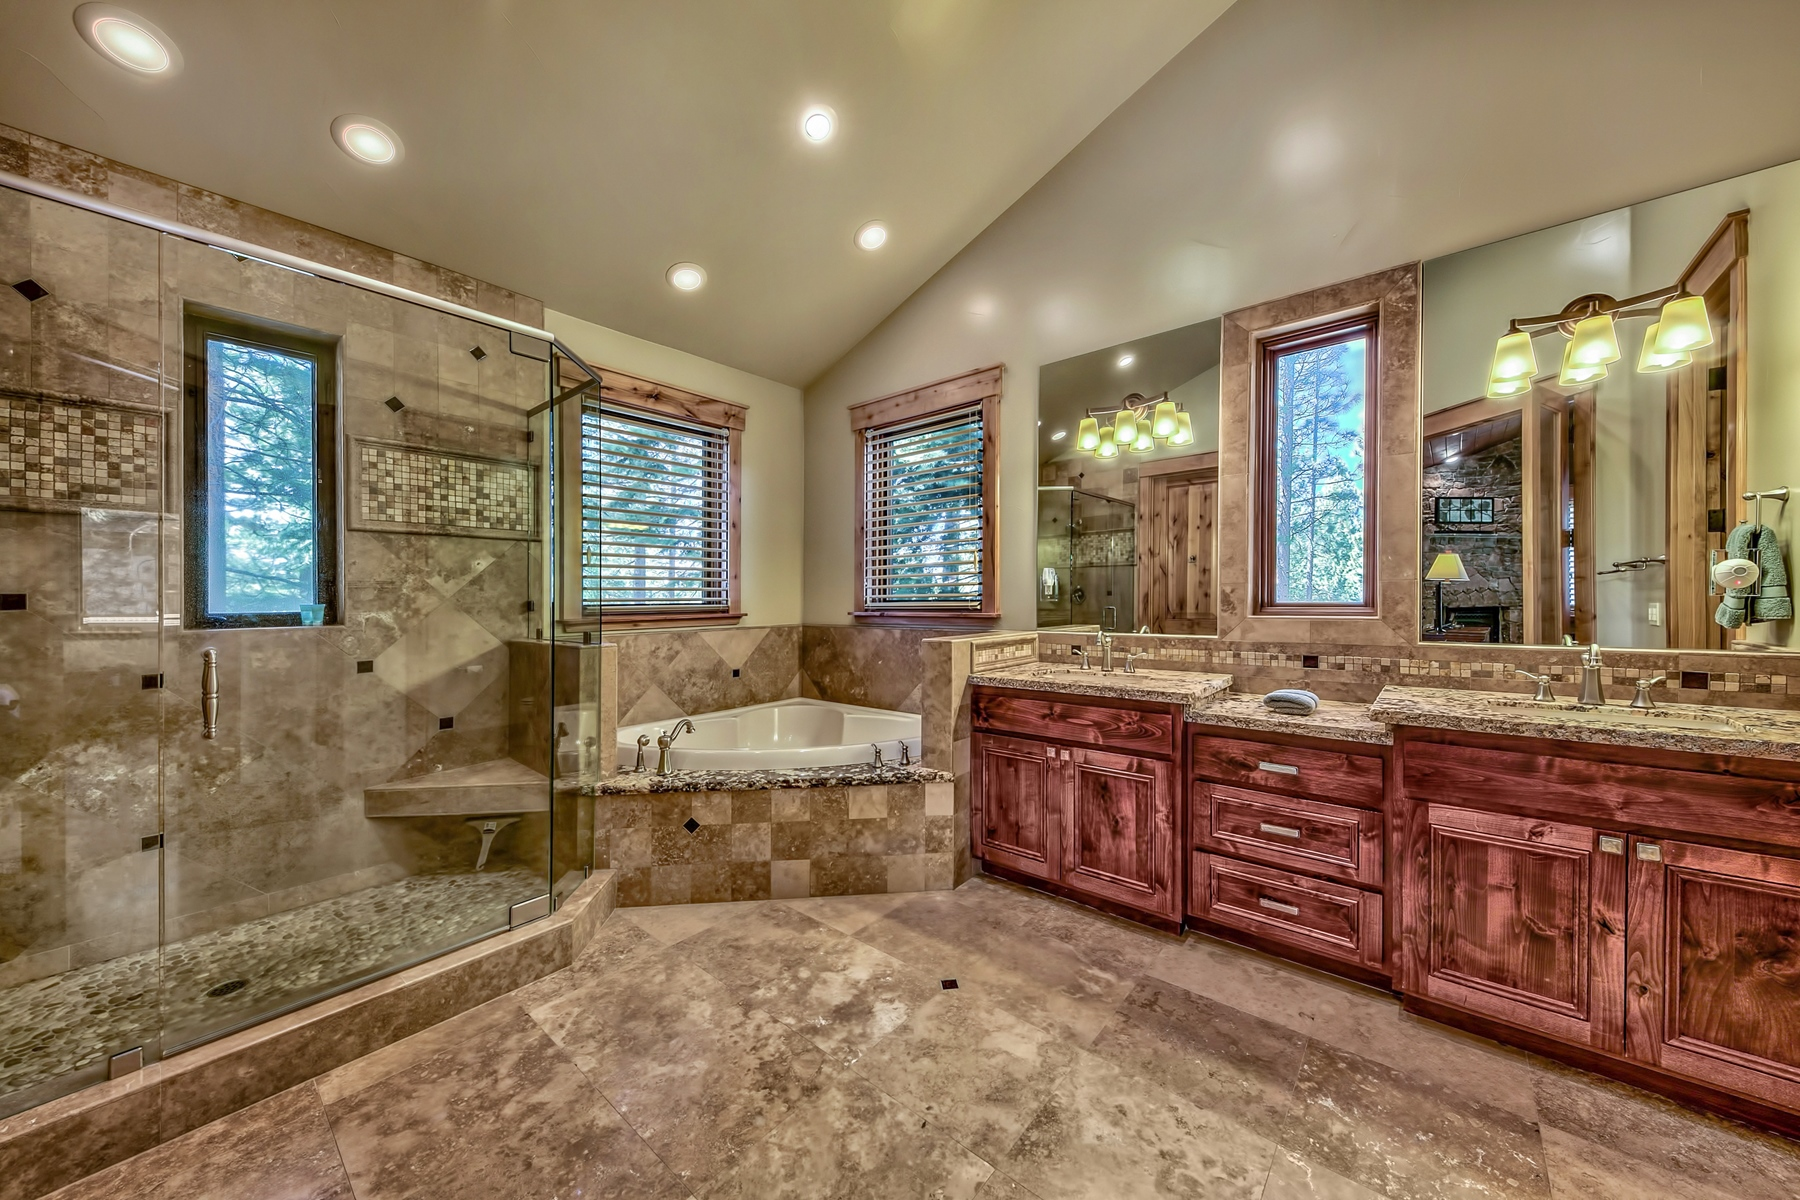 Additional photo for property listing at 1756 Gentian Cir, South Lake Tahoe, CA 96150 1756 Gentian Circle 南太浩湖, 加利福尼亚州 96150 美国